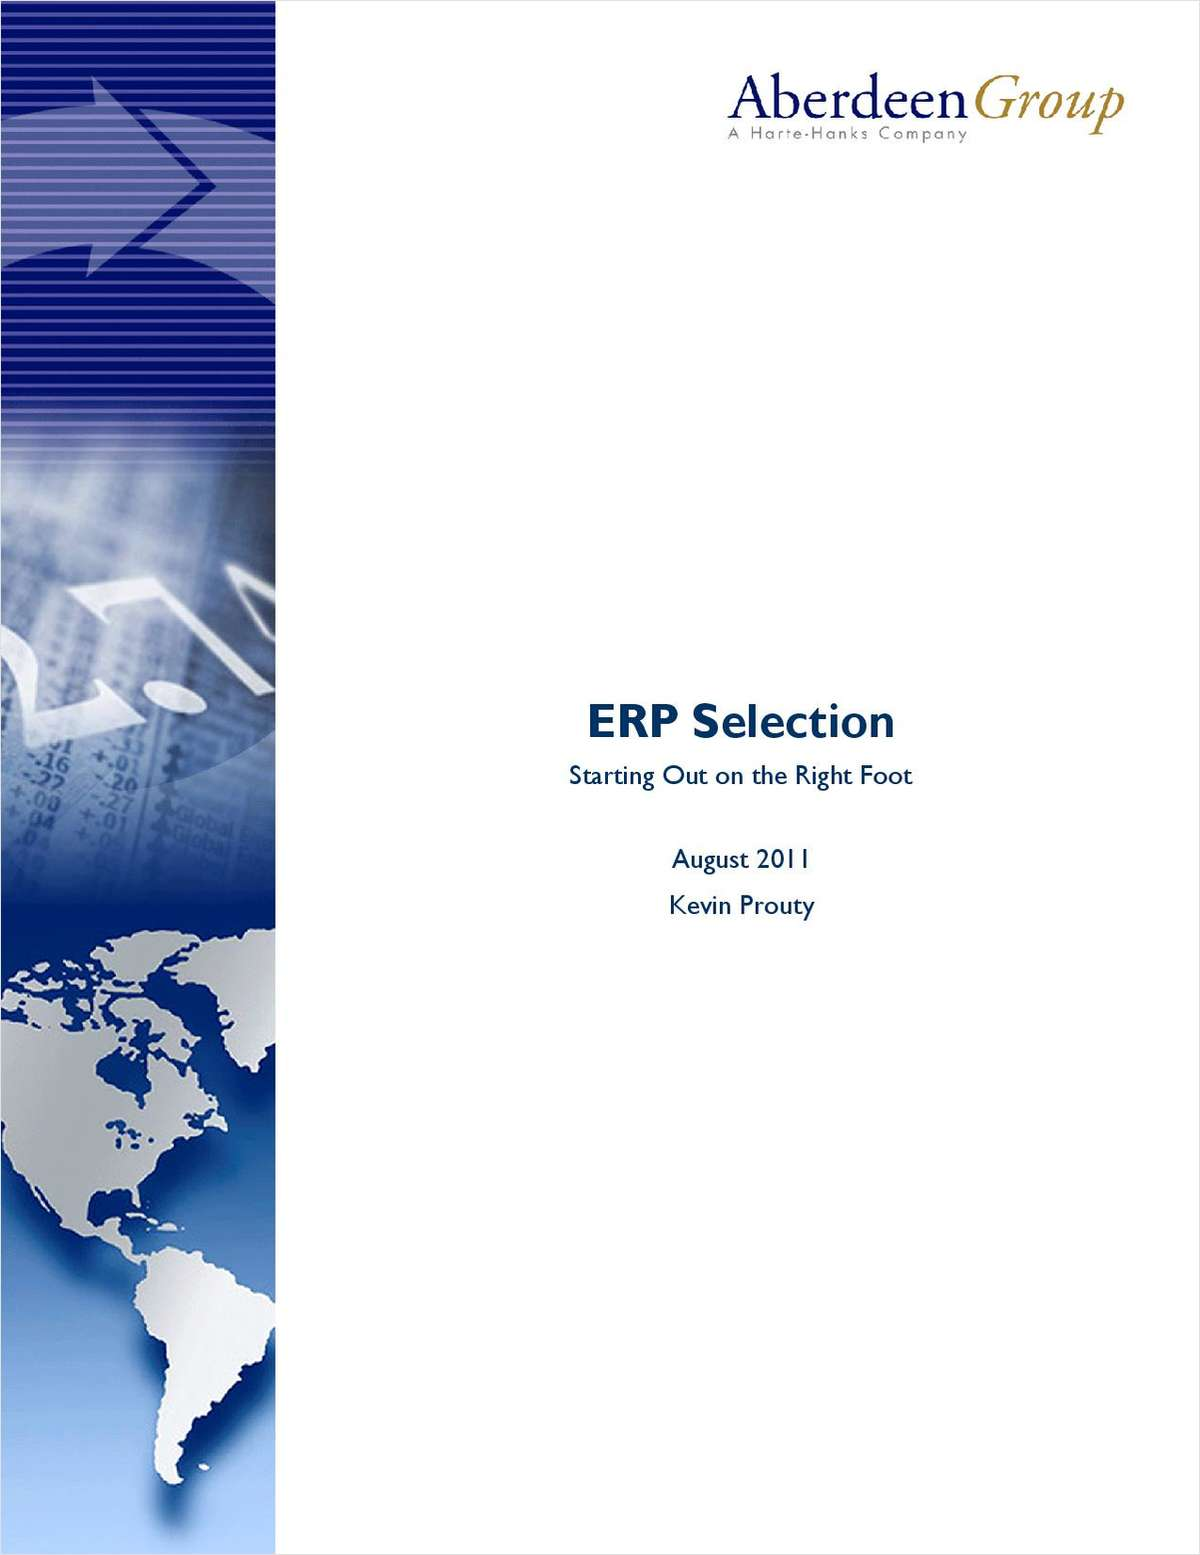 ERP Selection: Starting Out on the Right Foot